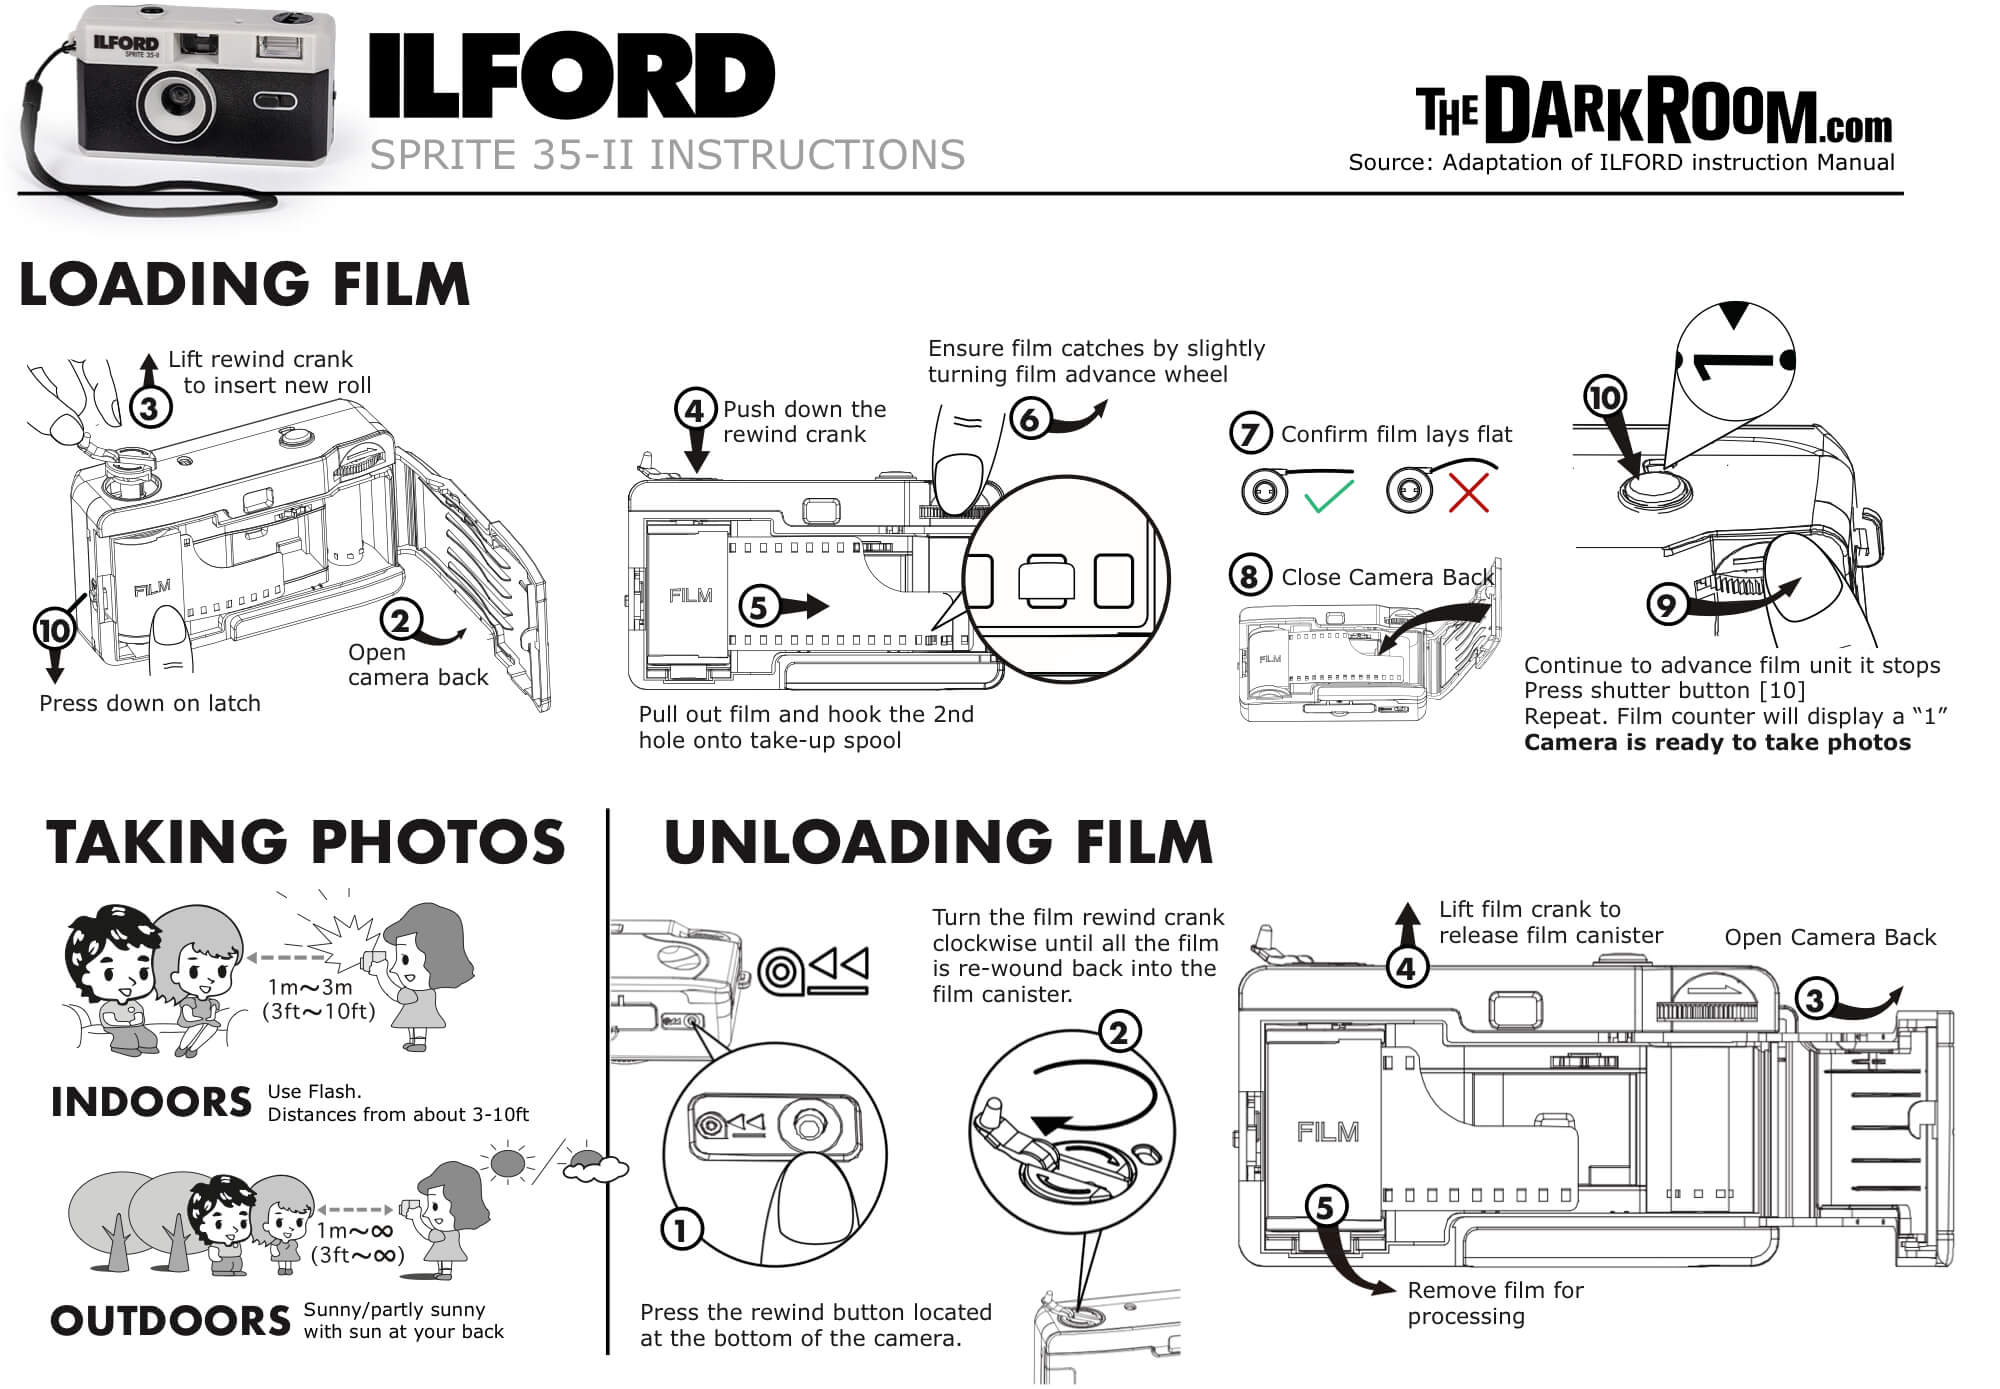 ILFORD Sprite 35 II Instructions